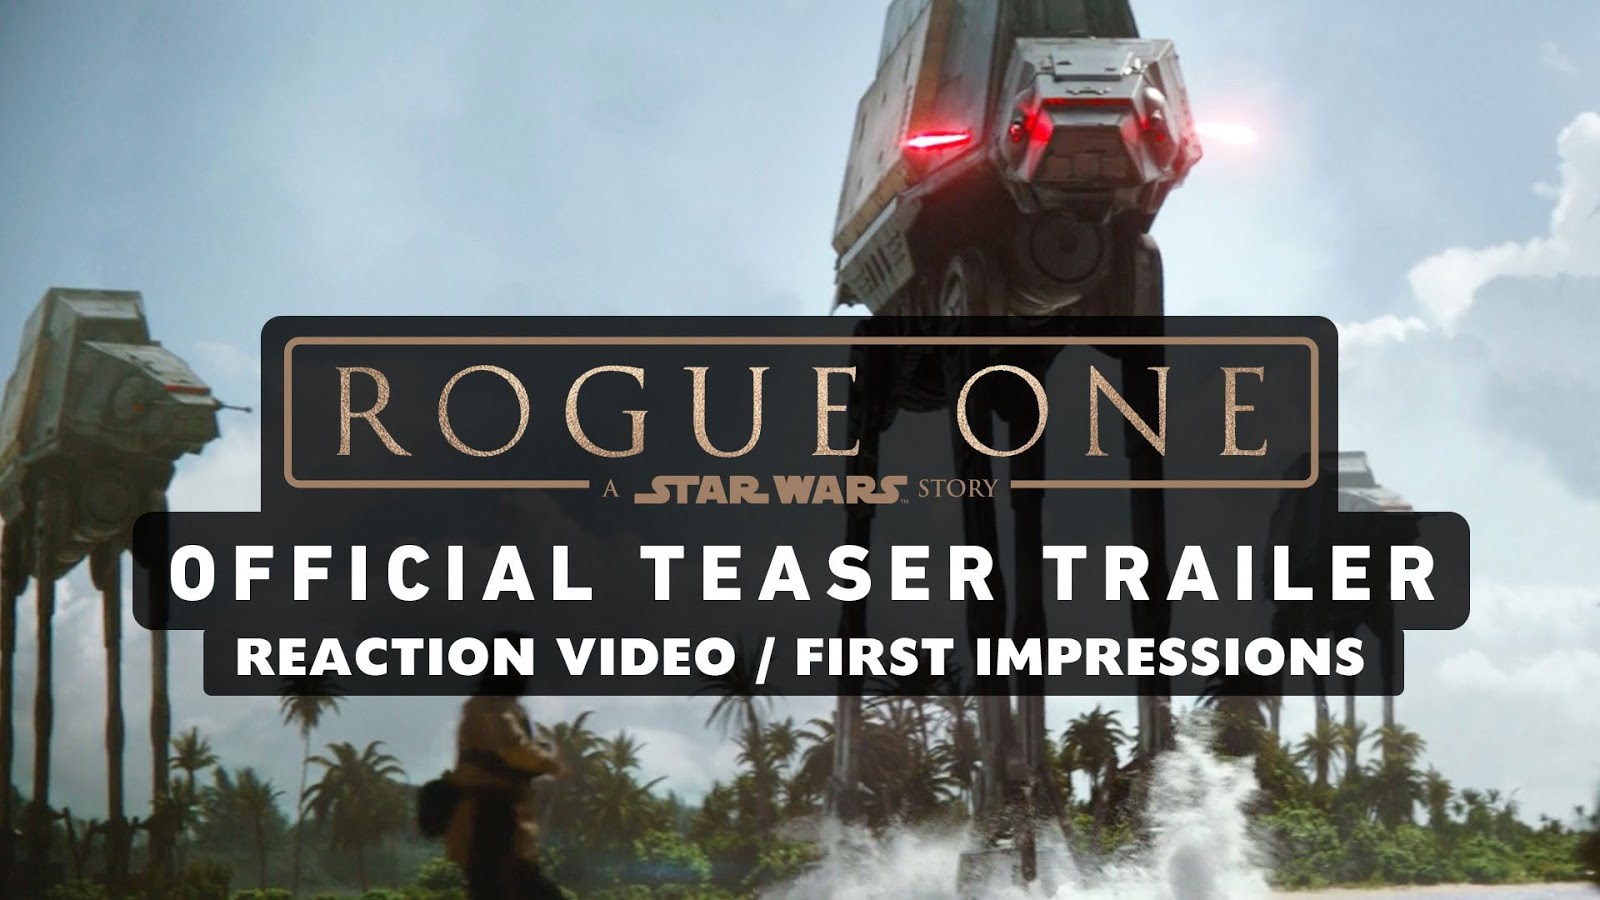 reaction to trailer for Rogue One: A Star Wars Story